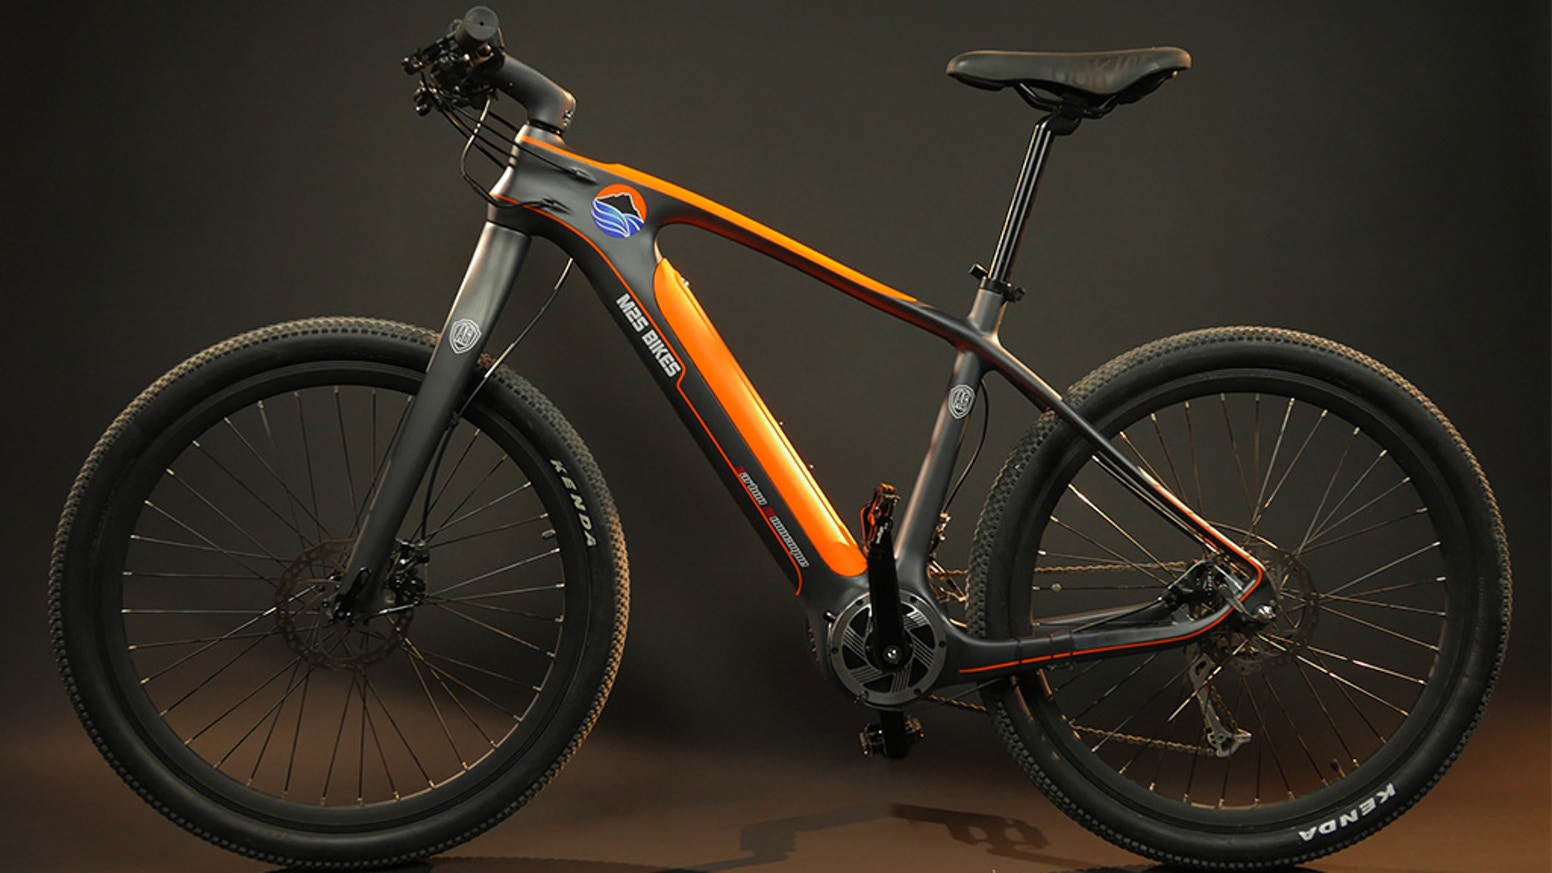 Carbon Fiber Bikes >> The All Go Carbon Fiber Electric Bike By Eric Crews Kickstarter